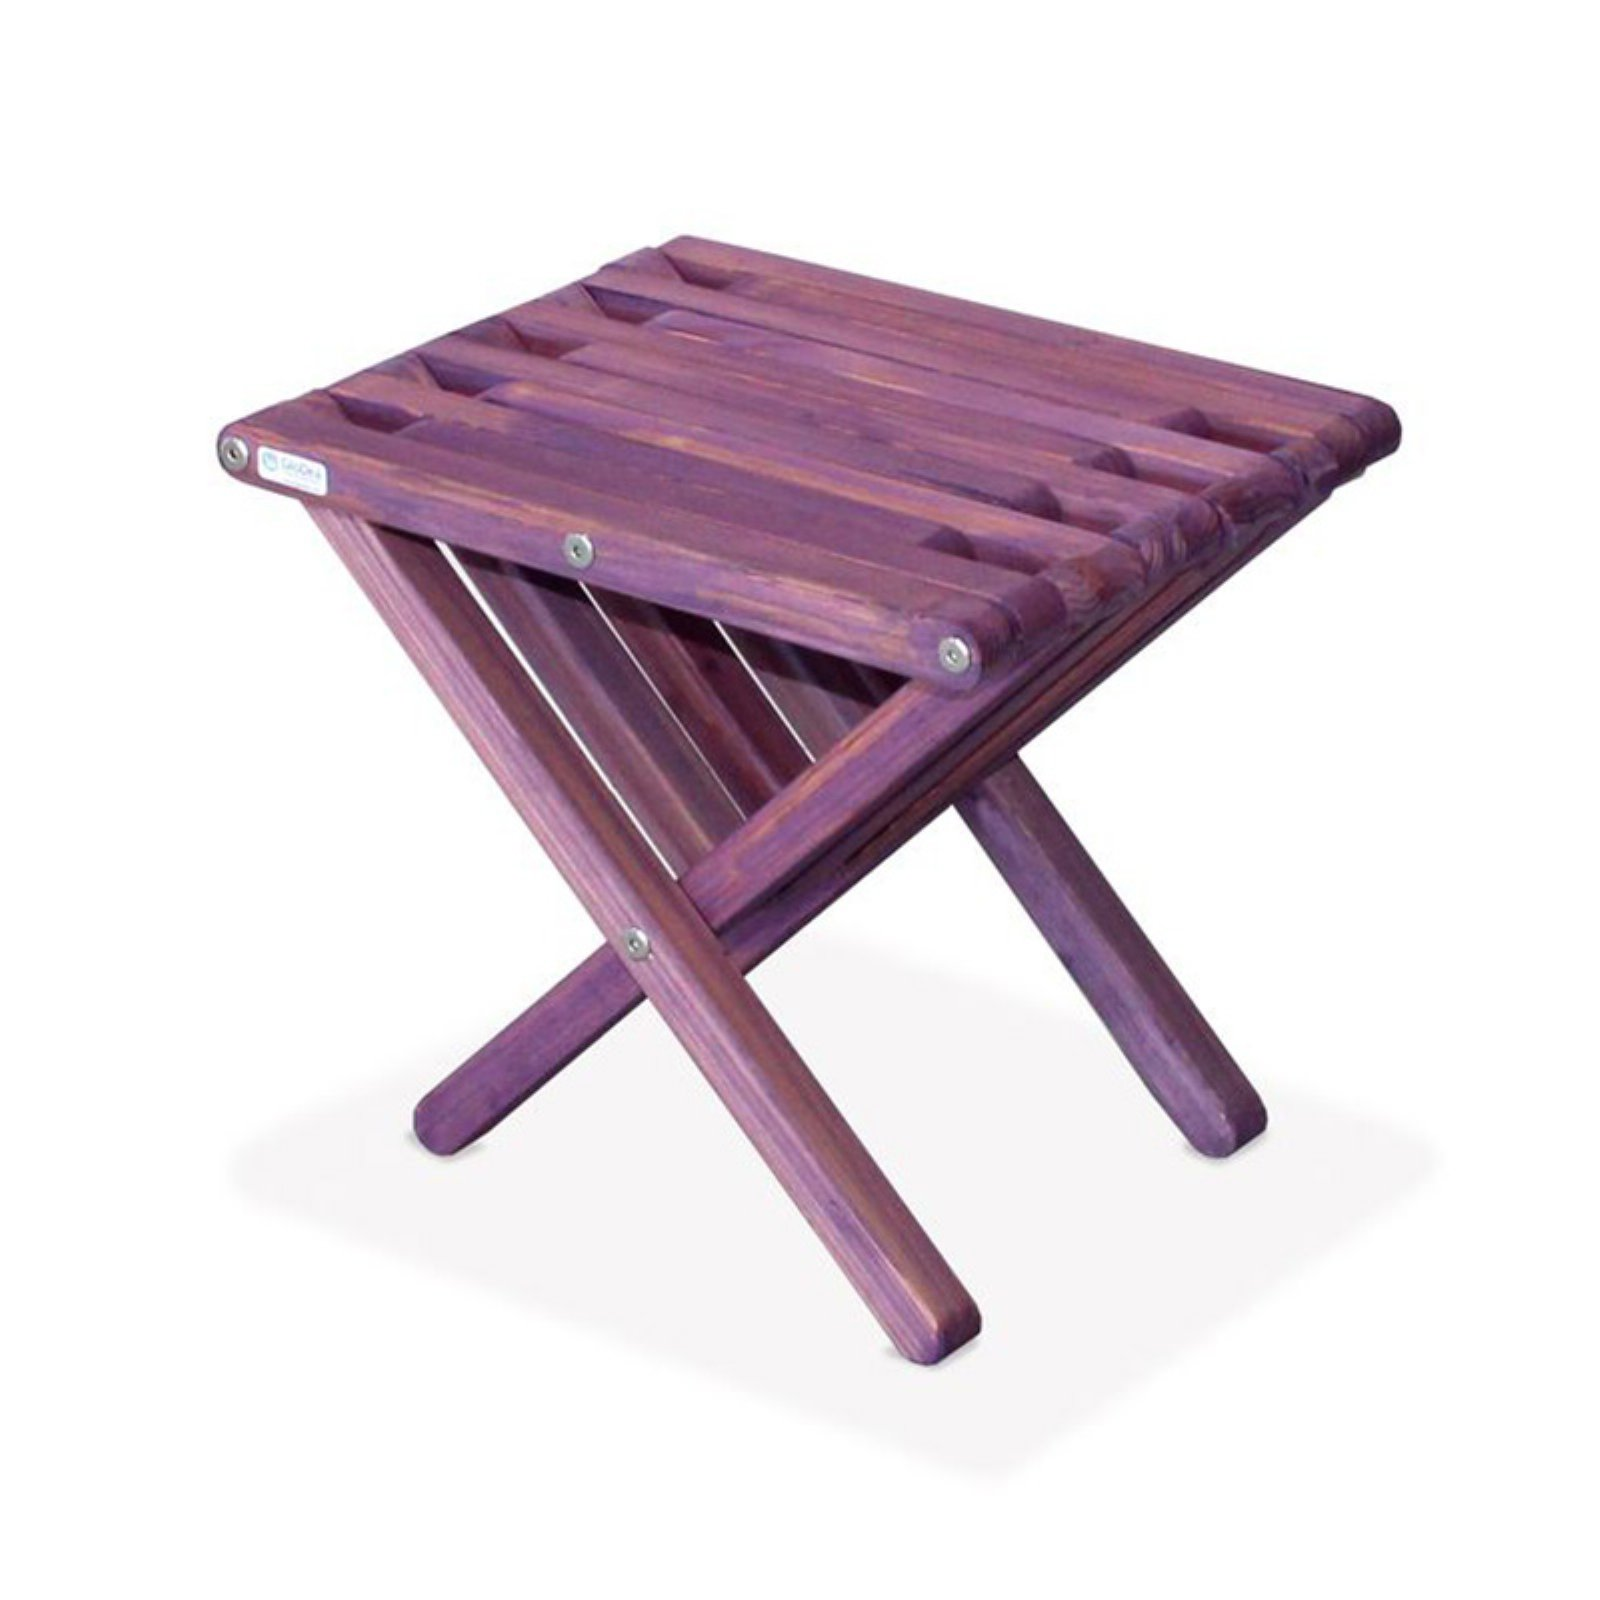 GloDea Xquare X36 Short Wooden Patio End Table